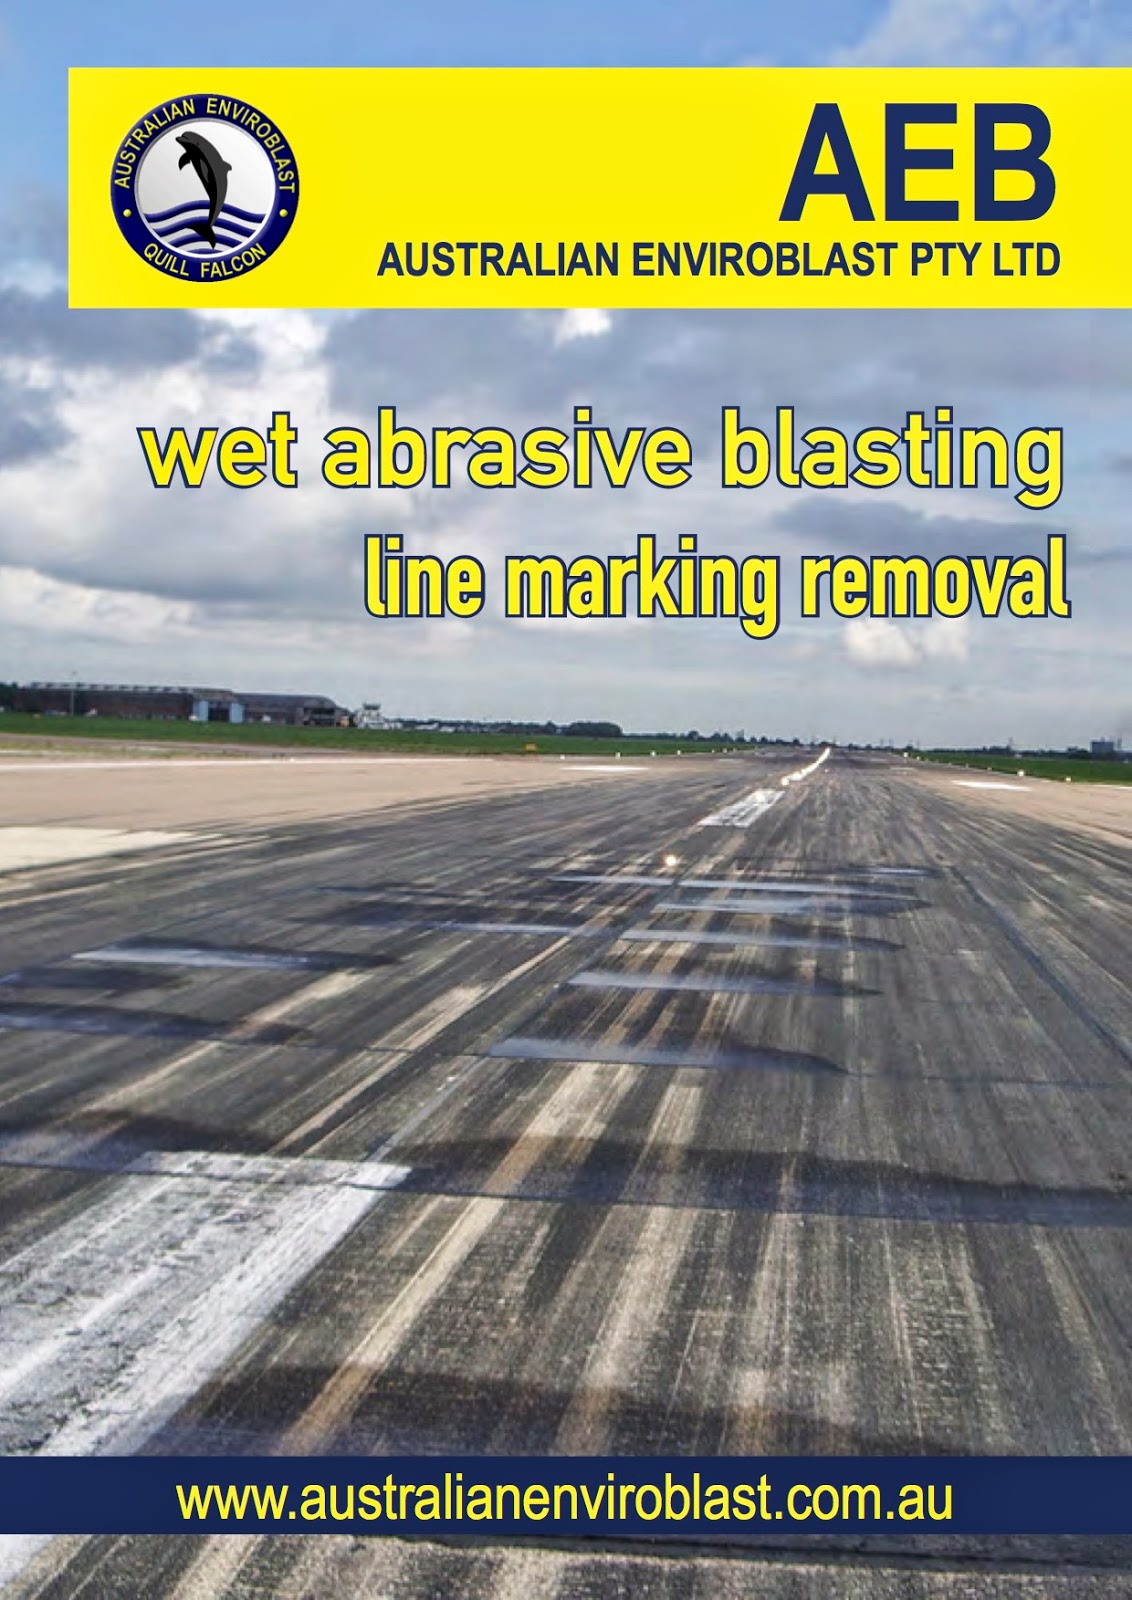 Wet abrasive blasting also cleans mould, grease, oil and other slippery deposits from roads, paths, walkways, car parks and driveways.